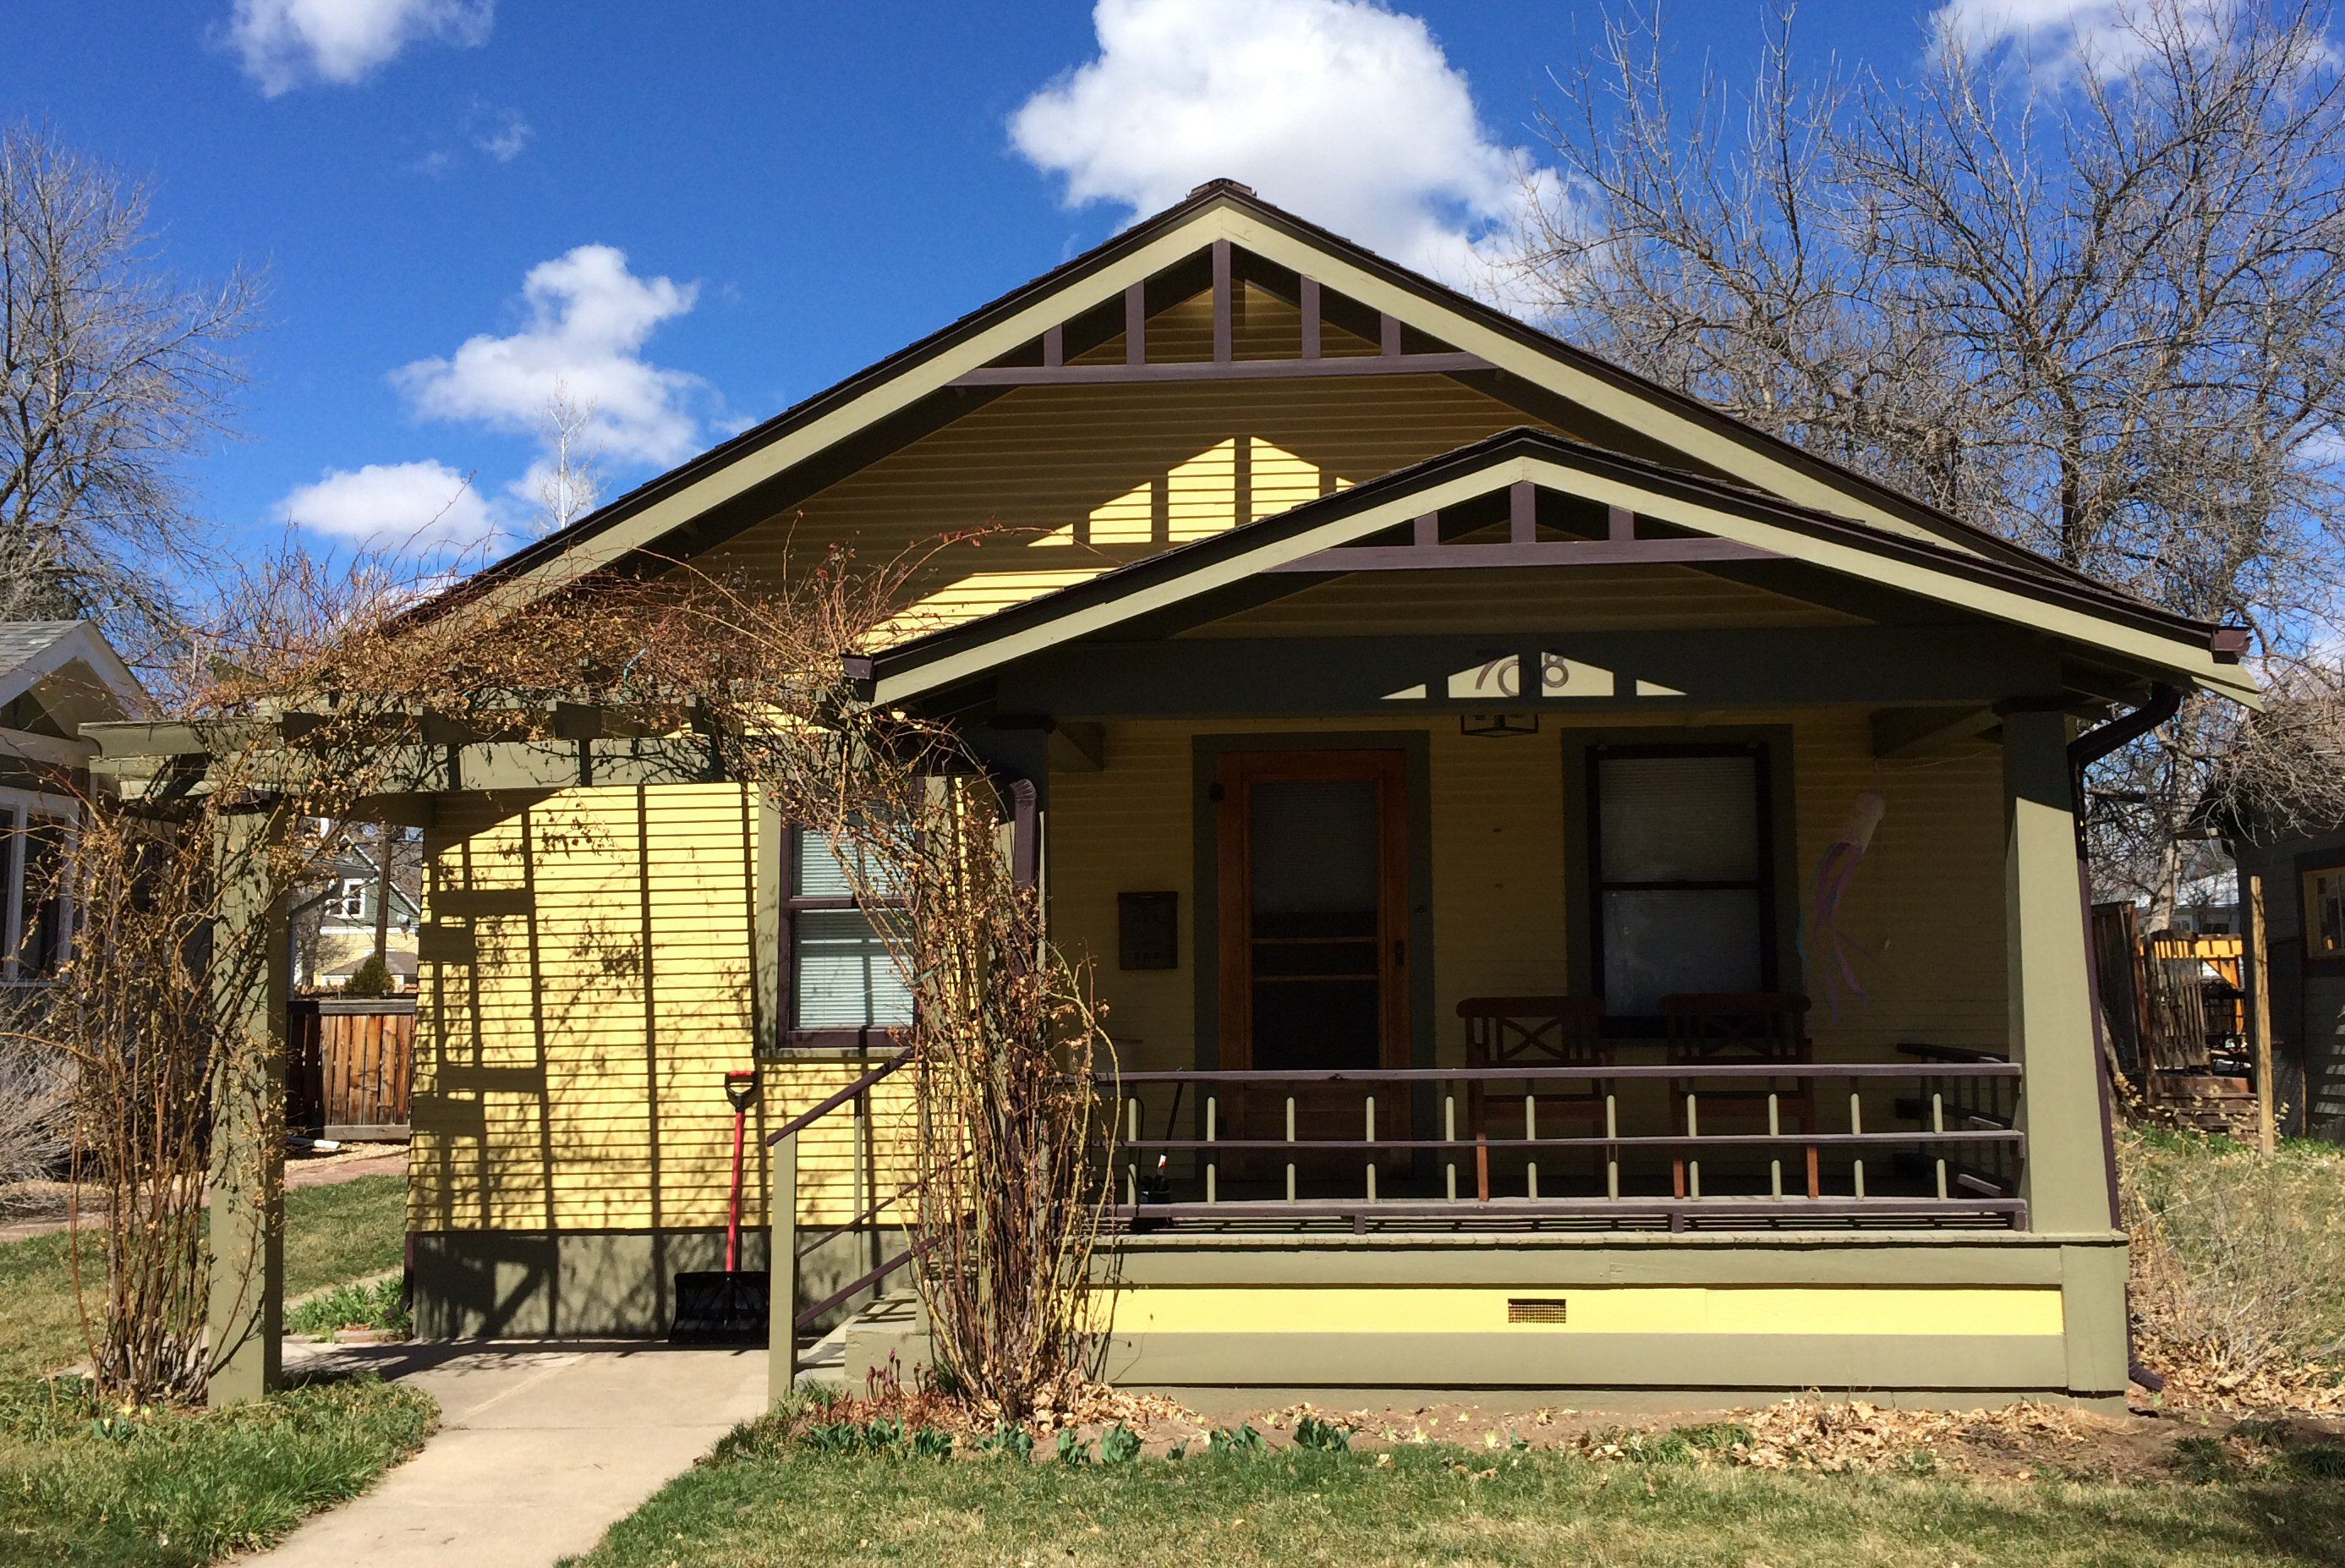 Yellow Bungalow With Green Trim Front Gable Have Porch Roof That Imitates